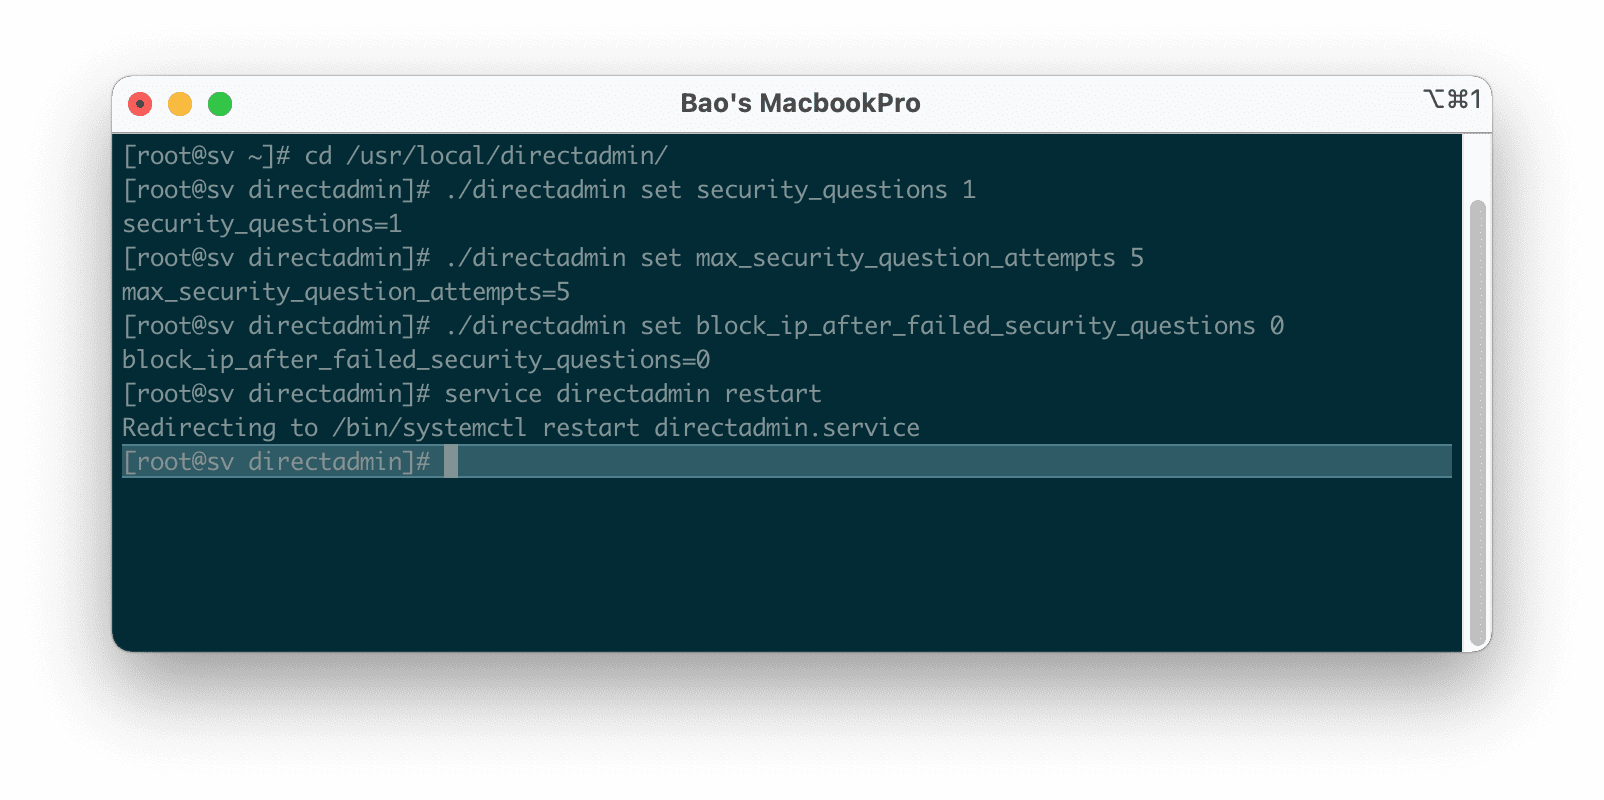 turn-on-feature-bat-security-questions-tren-directadmin